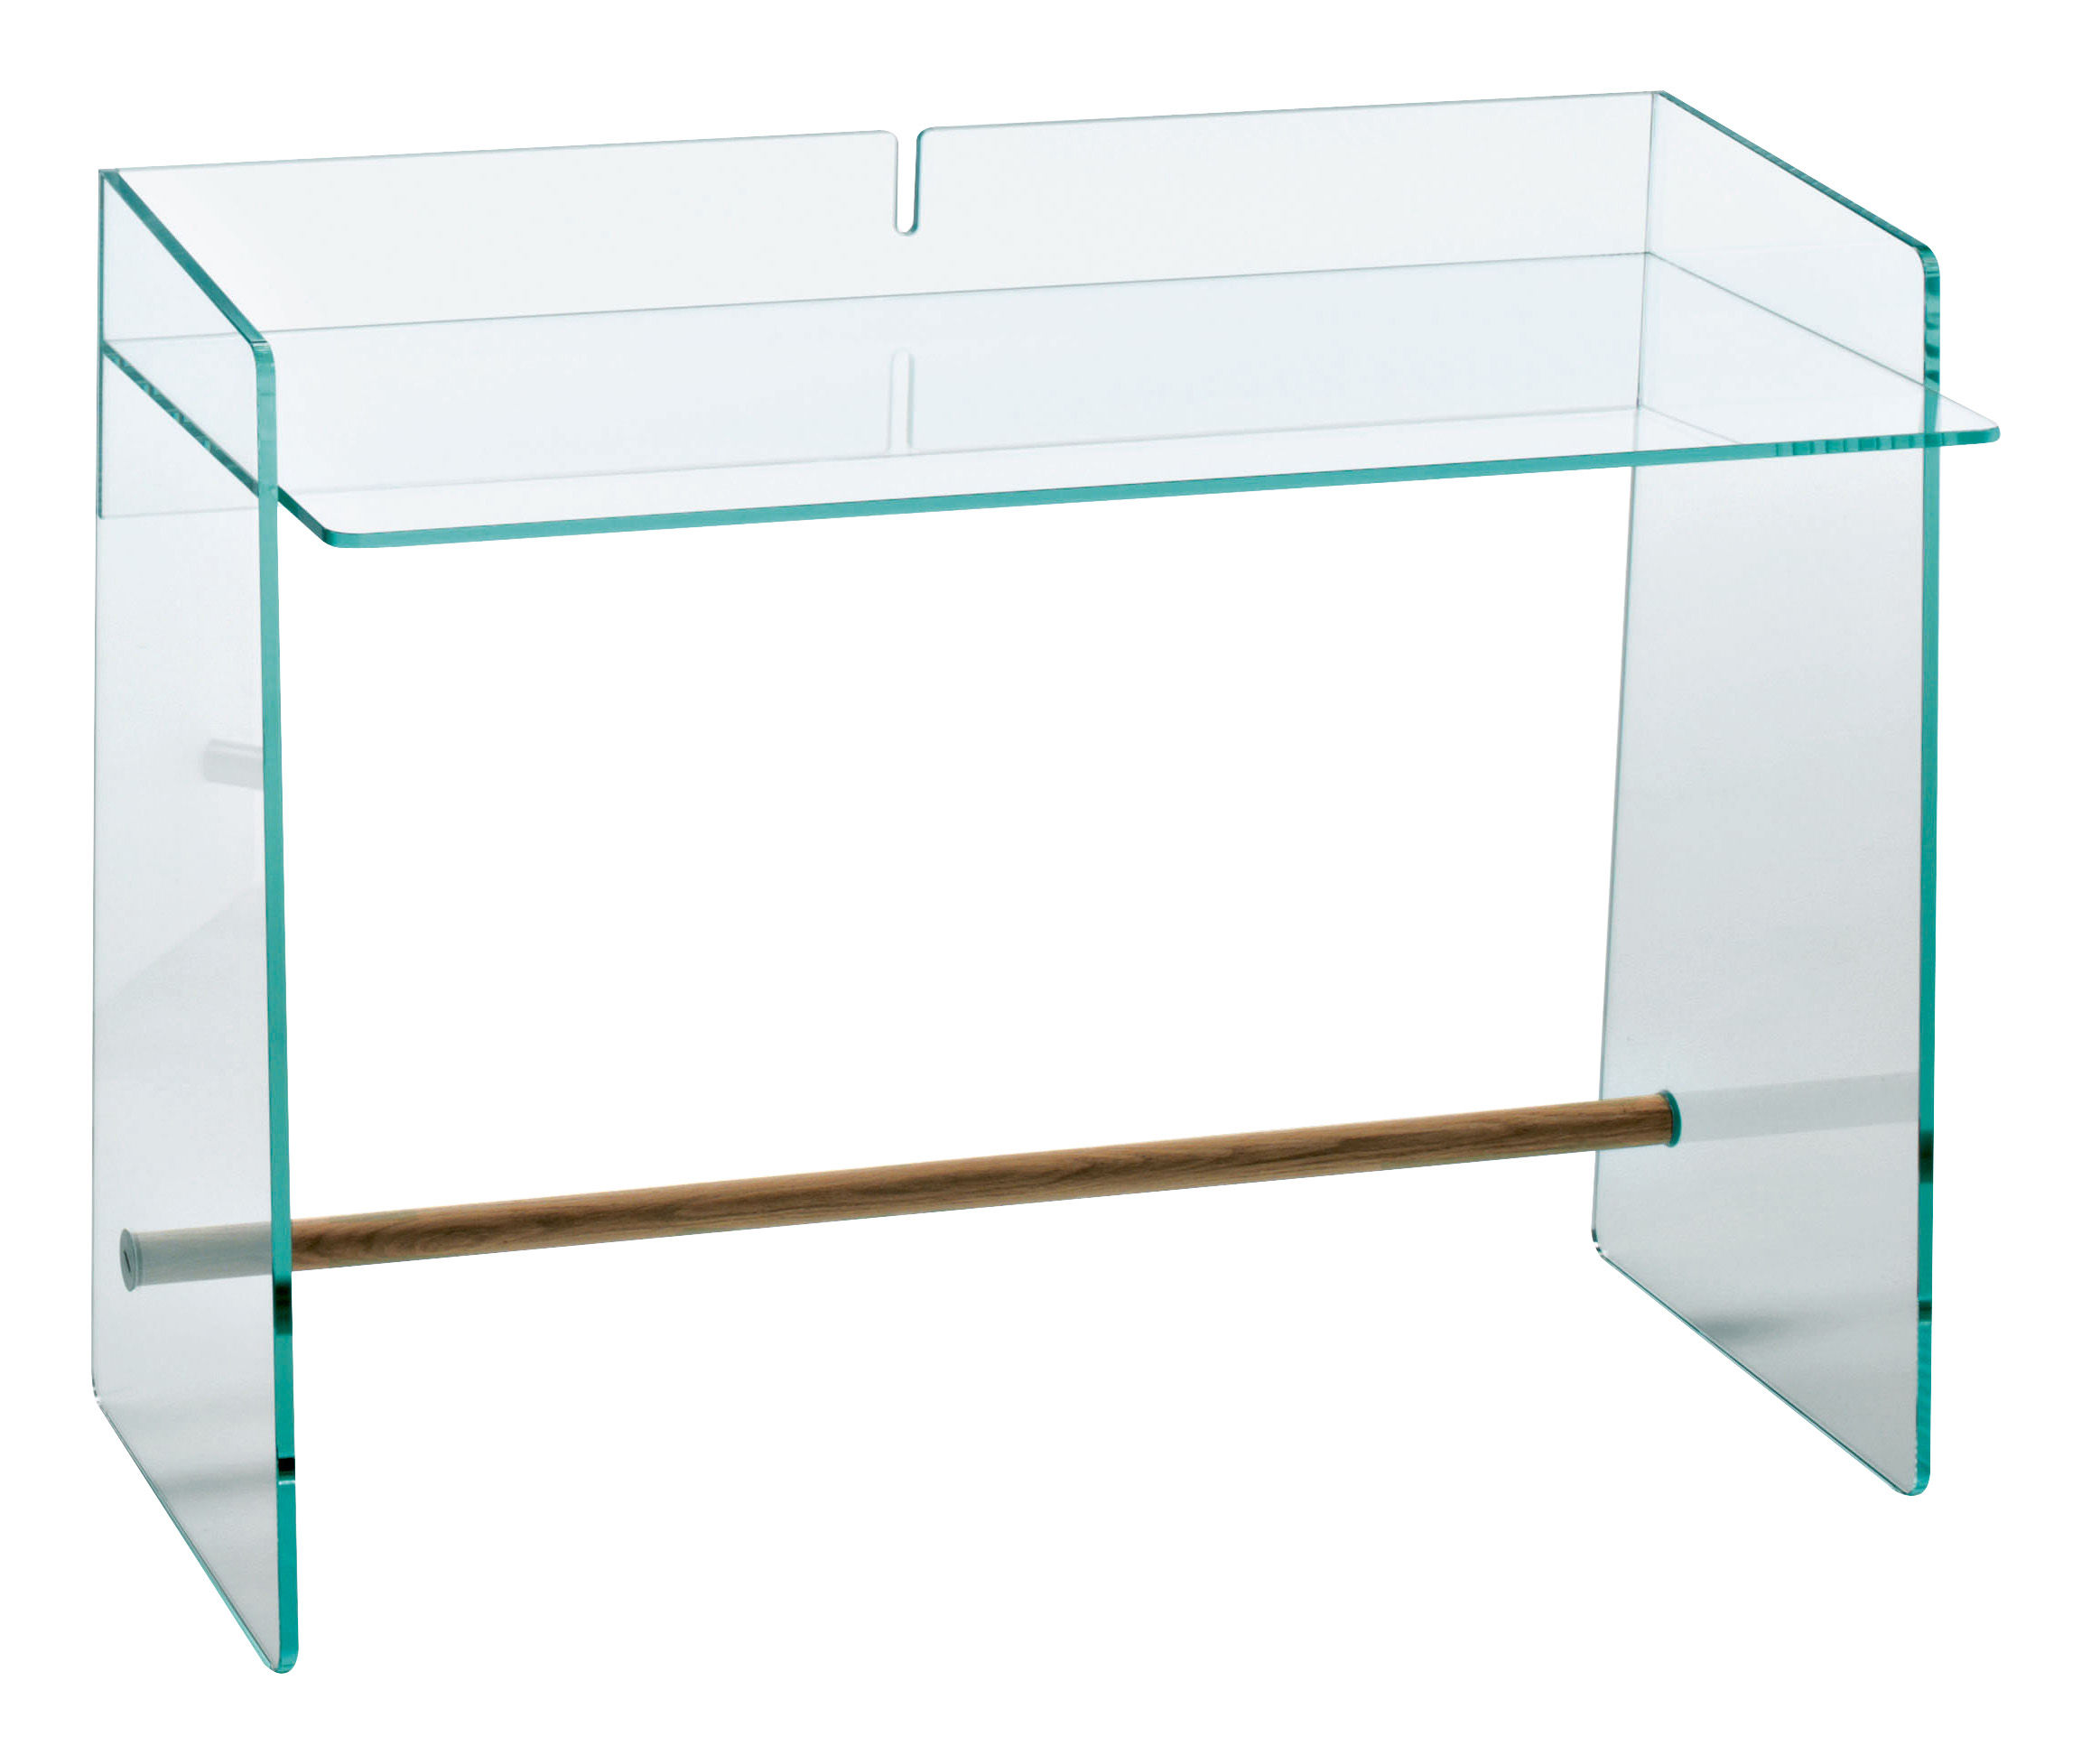 Furniture - Office Furniture - Pirandello Desk - 110 x 49 cm by Glas Italia - Transparent / Natural ash footrest - Glass, Natural ash, Stainless steel